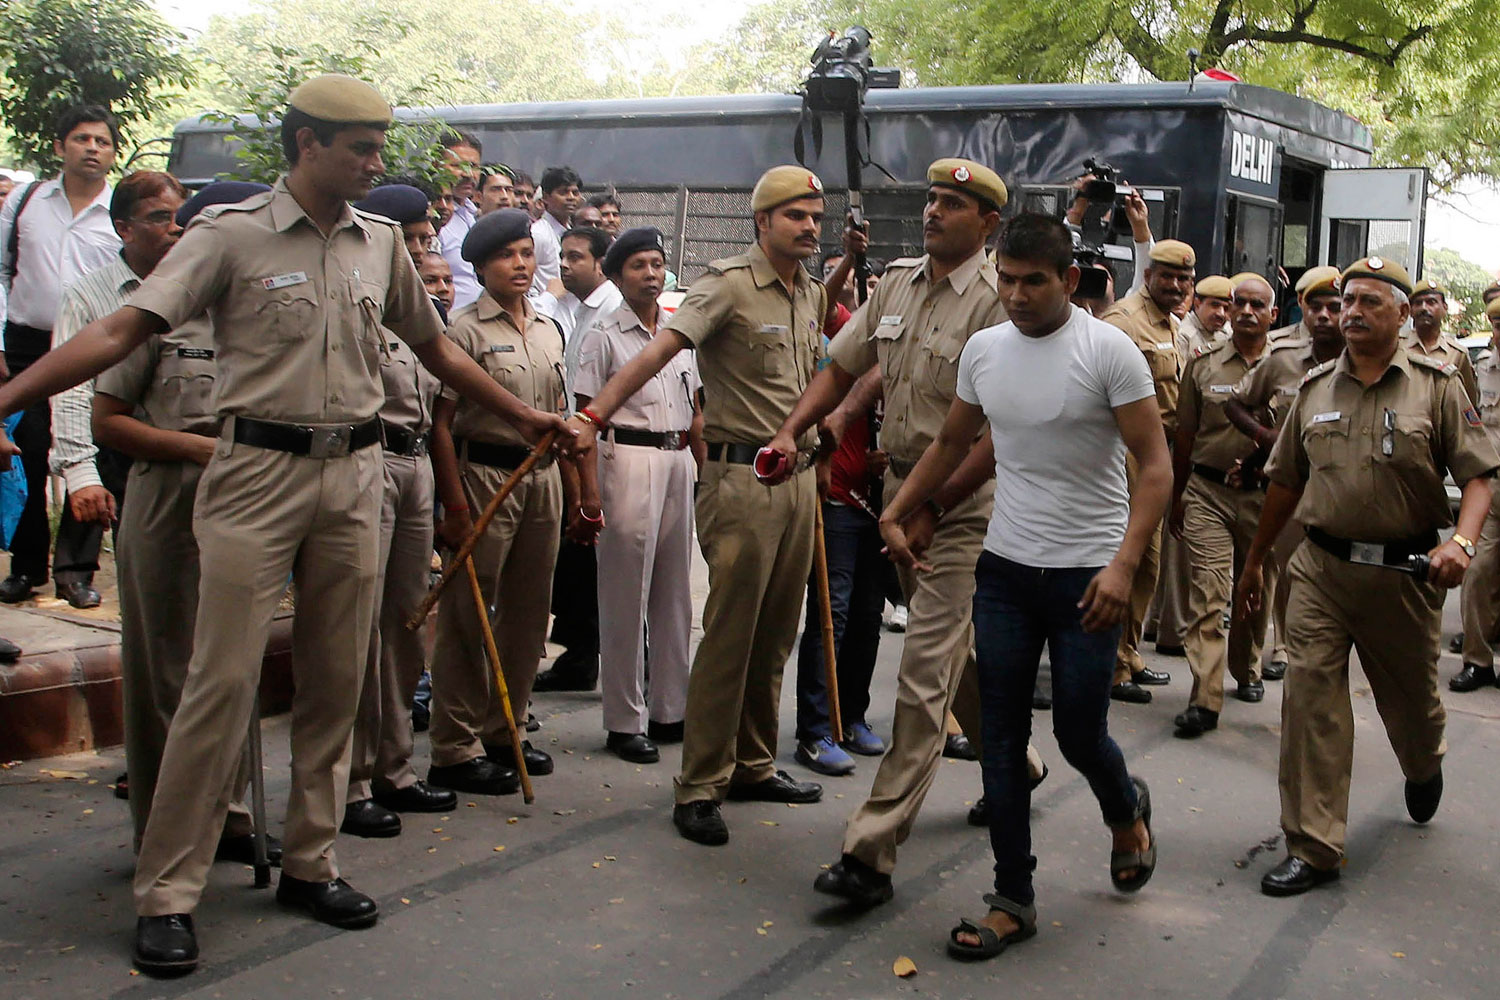 Vinay Sharma (wearing white T-shirt), one of the four men who were sentenced to death for fatally raping a young woman on a bus last December, is escorted by police outside a court in New Delhi Sept. 24, 2013.